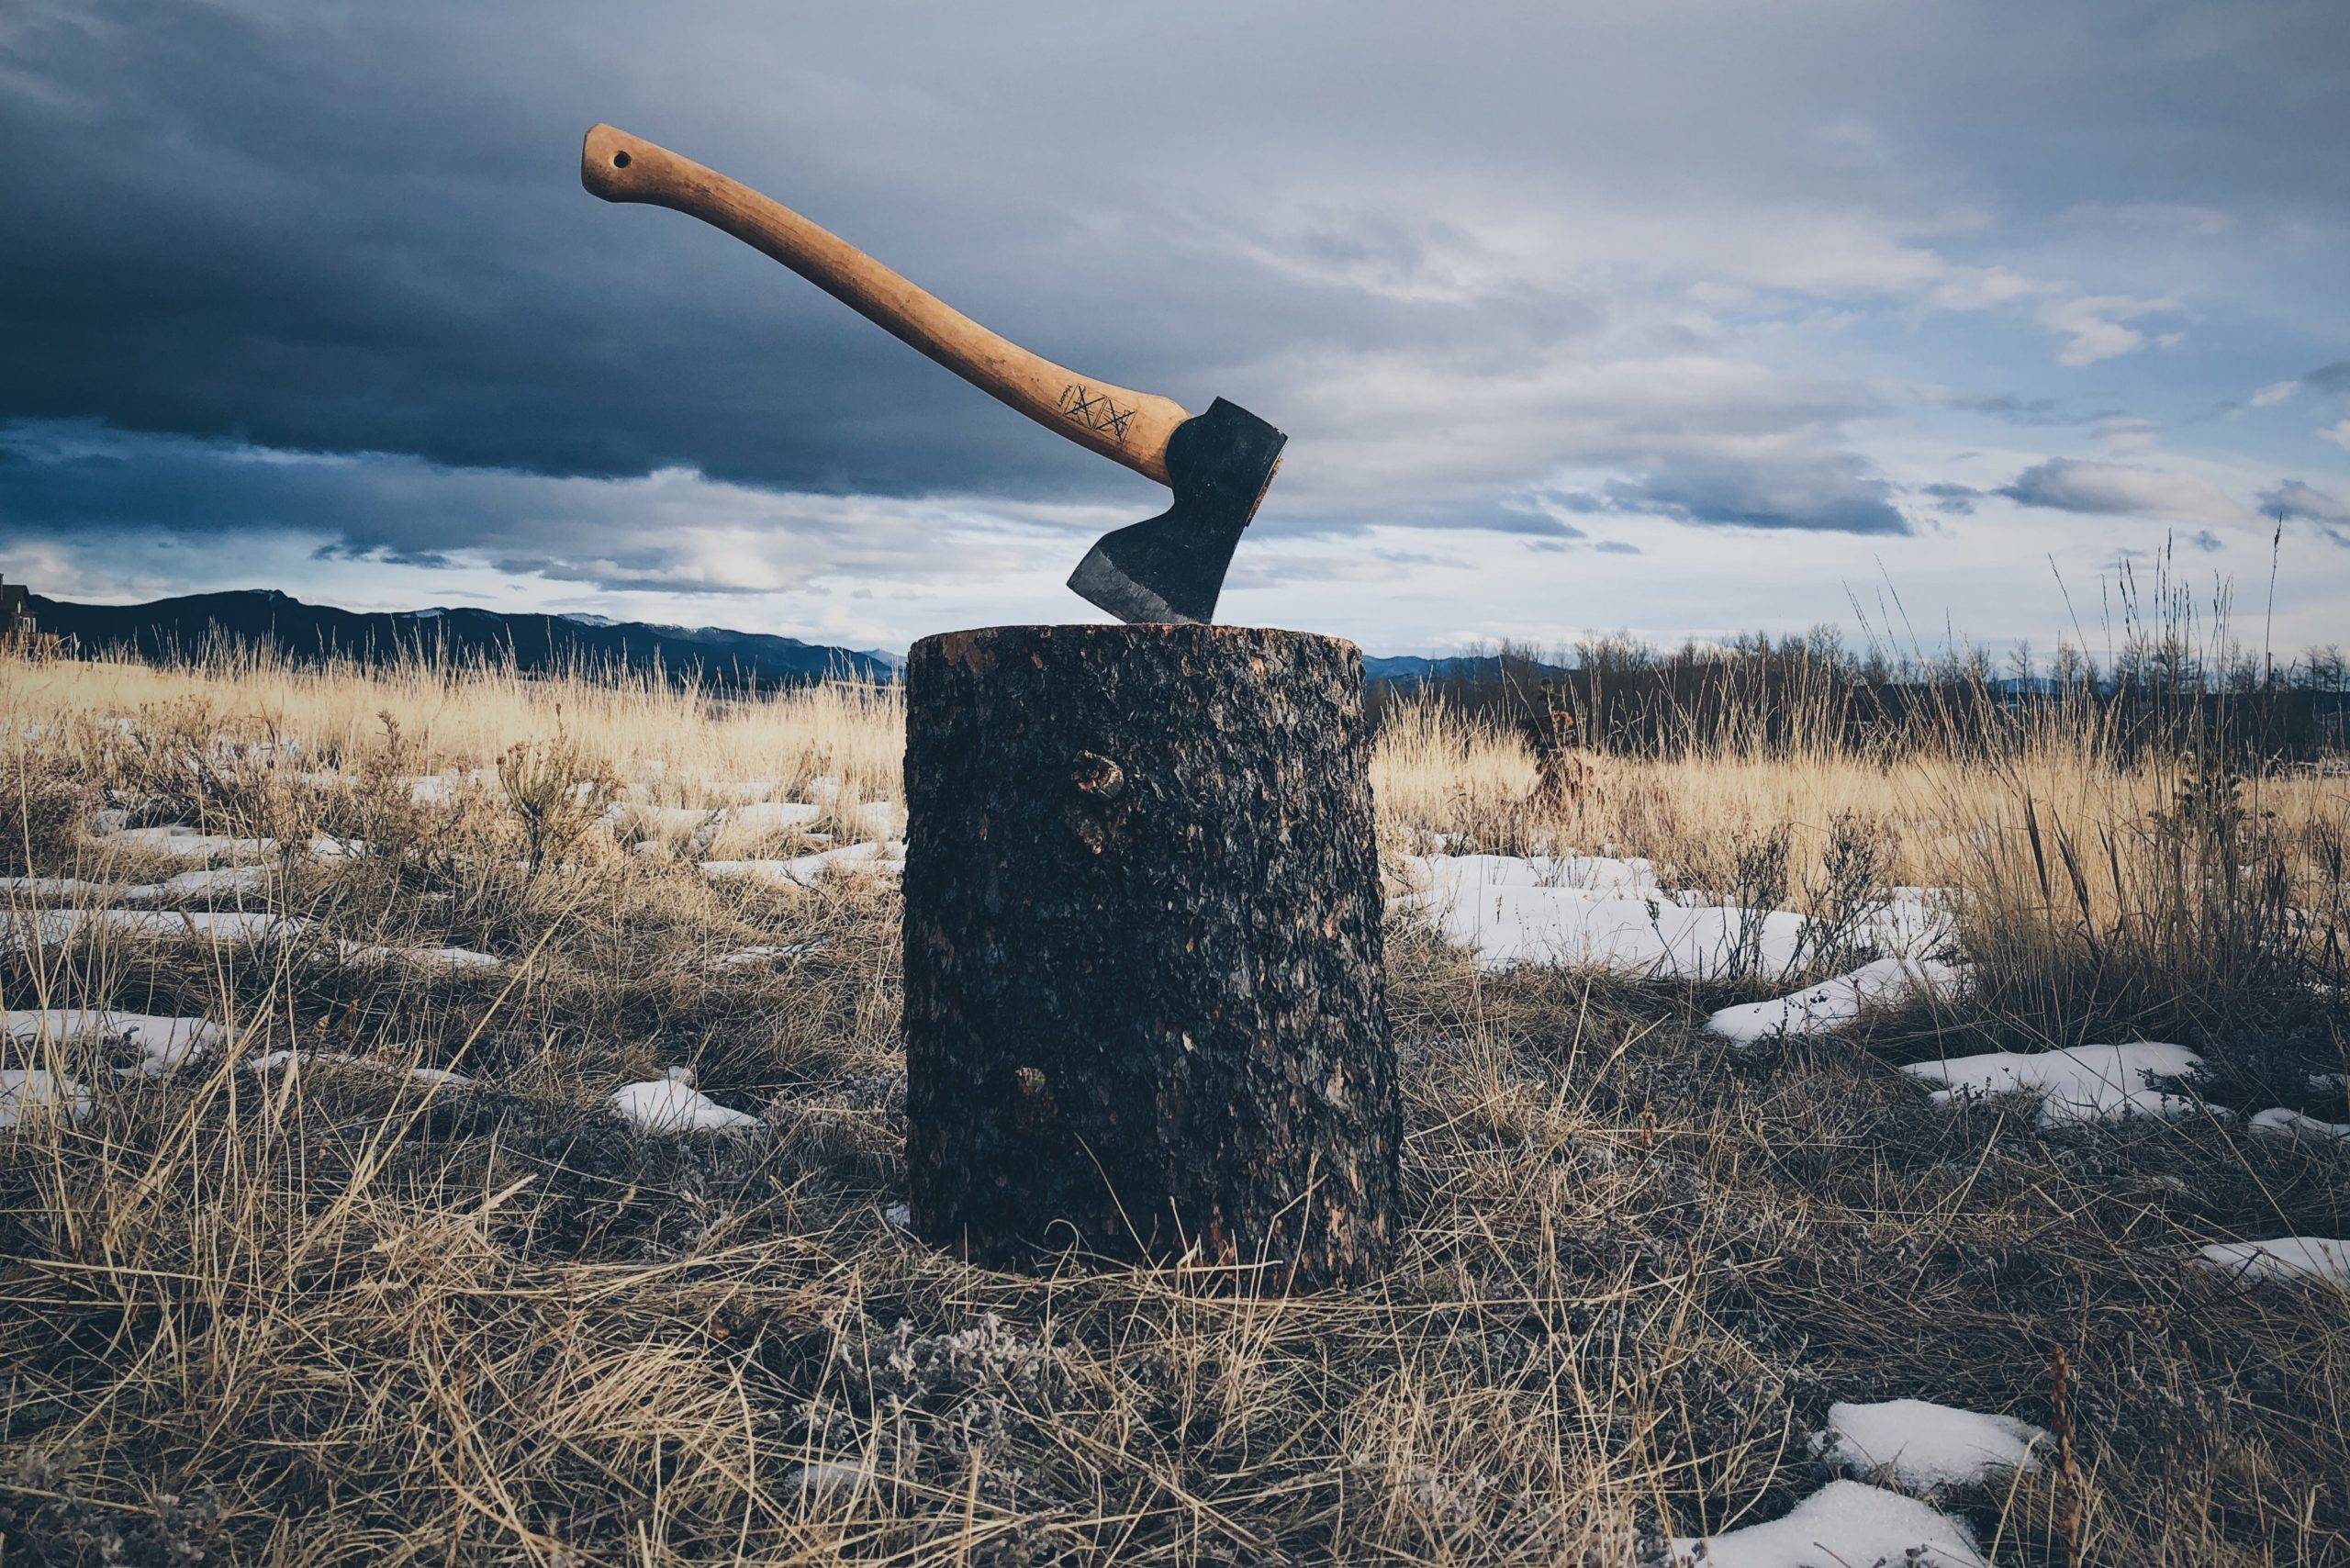 the parable about the competition of lumberjacks